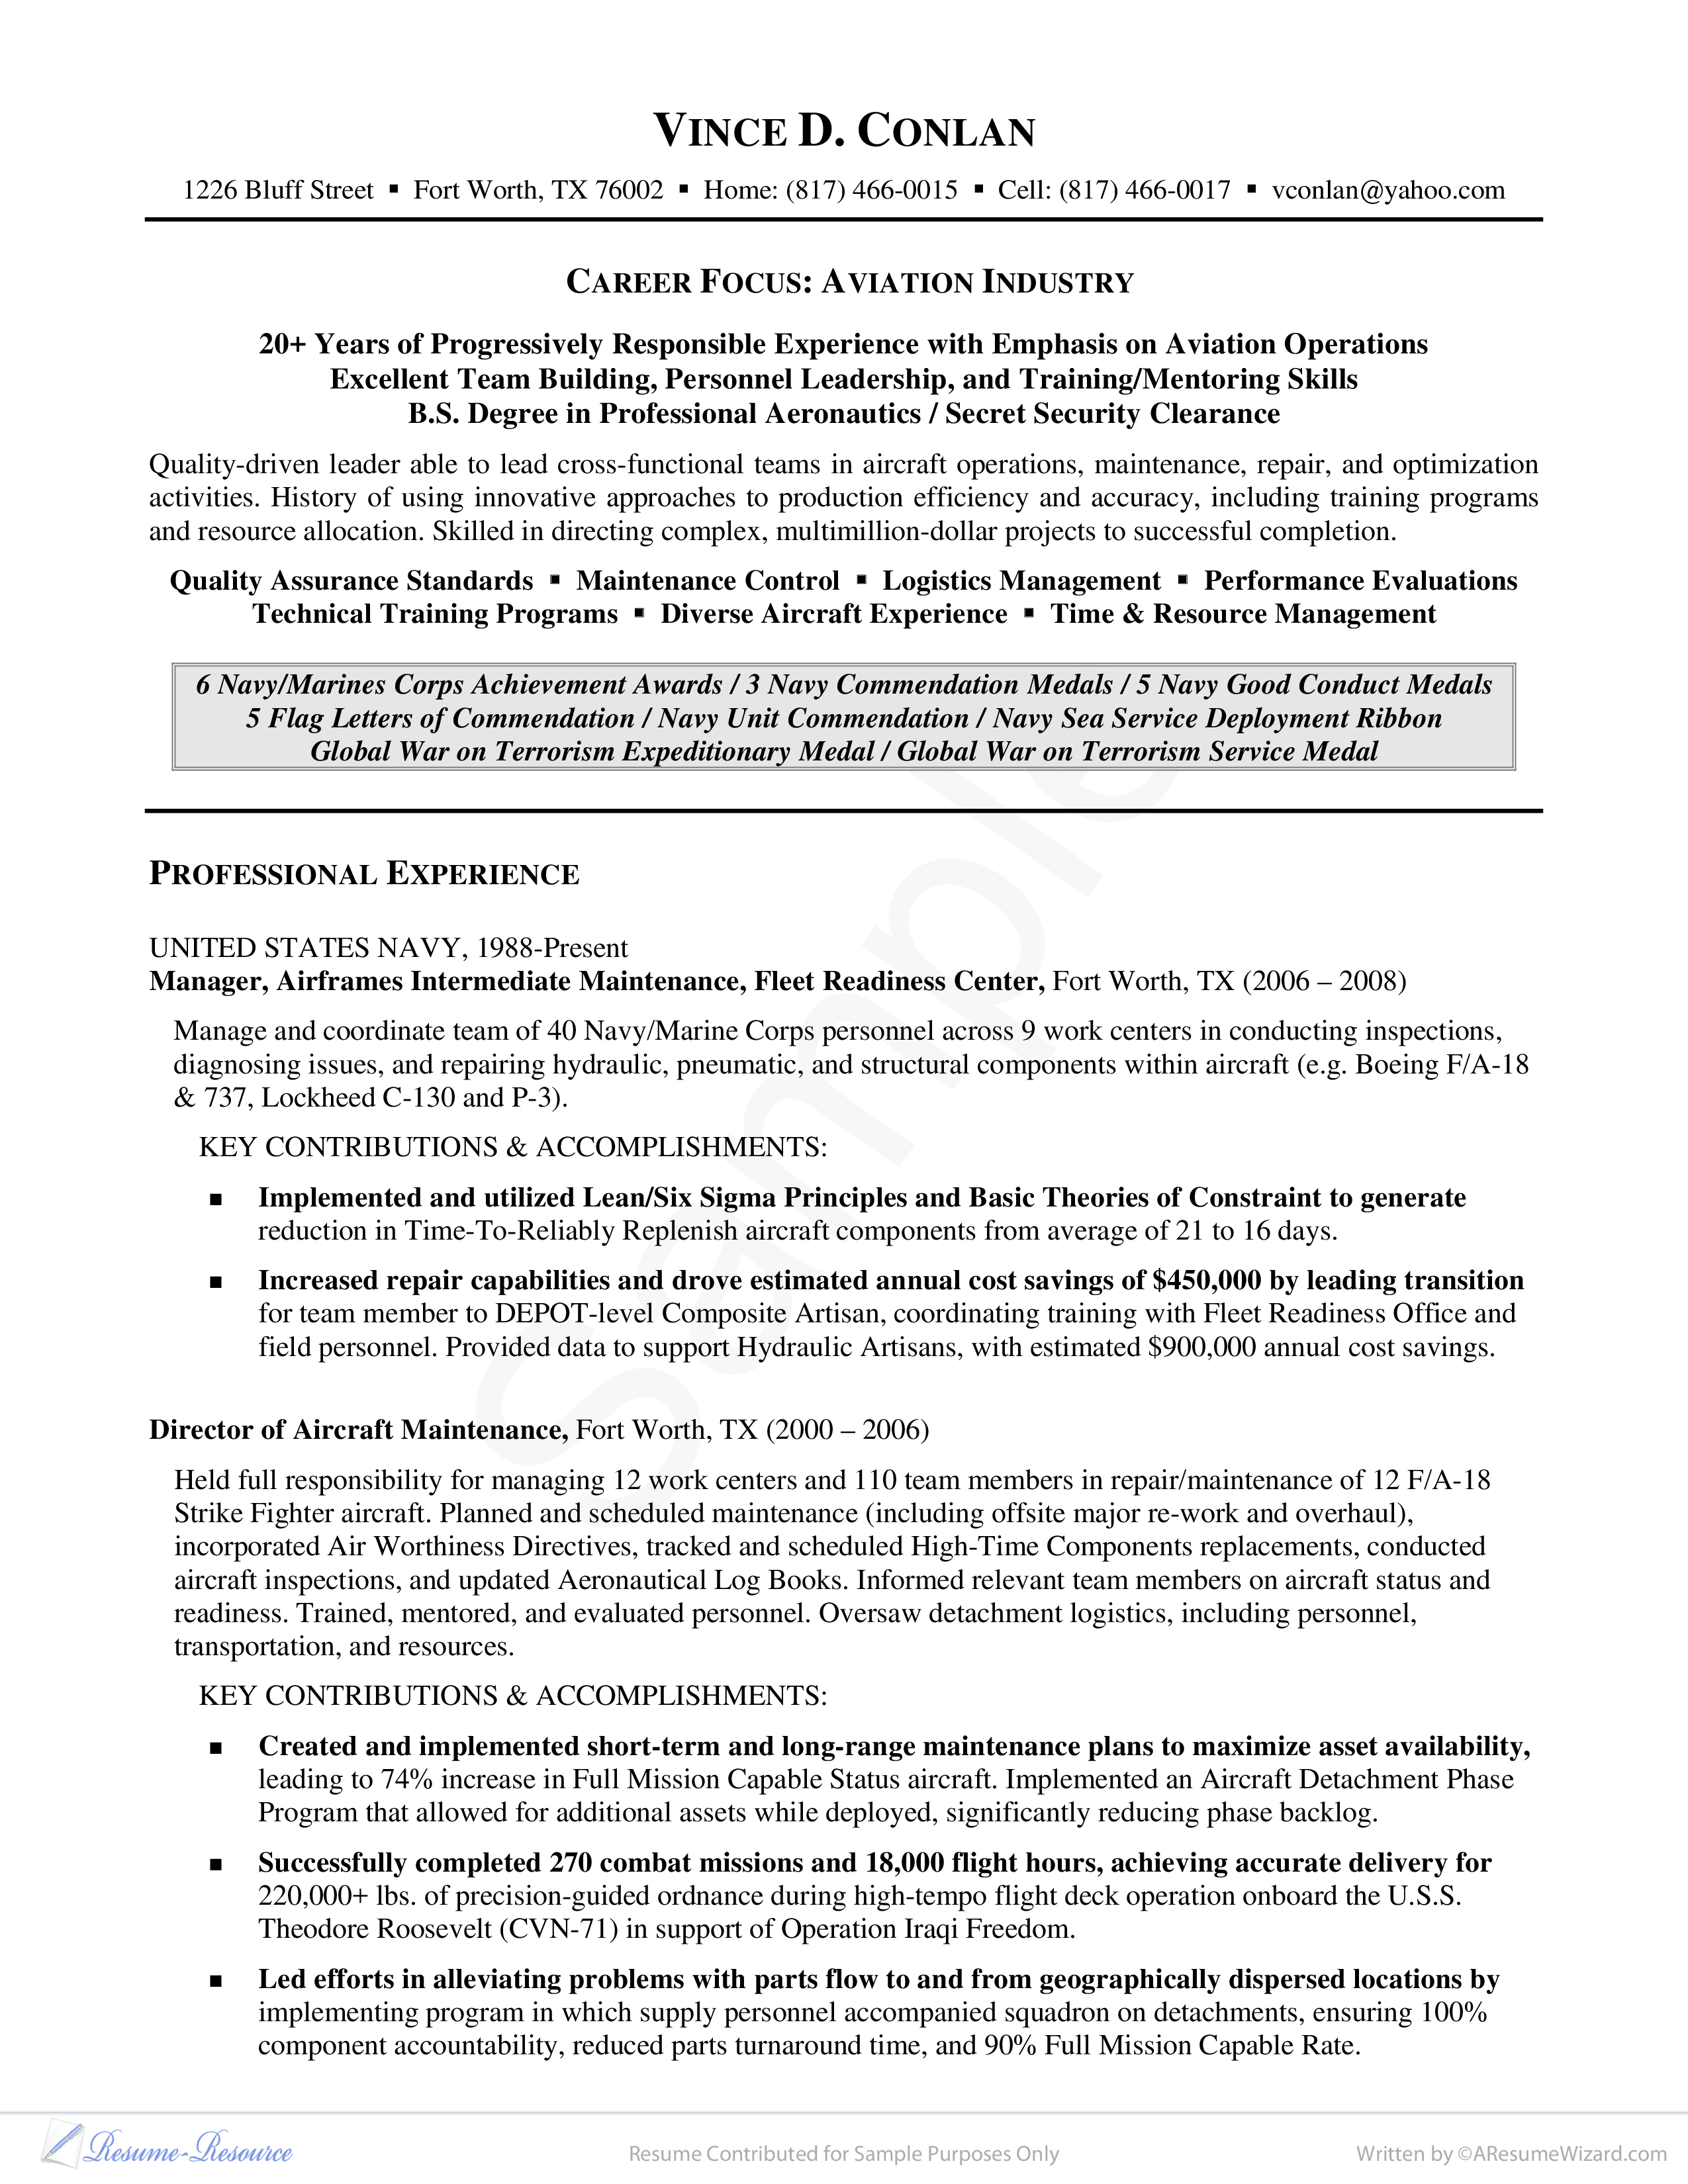 letters of commendation sample